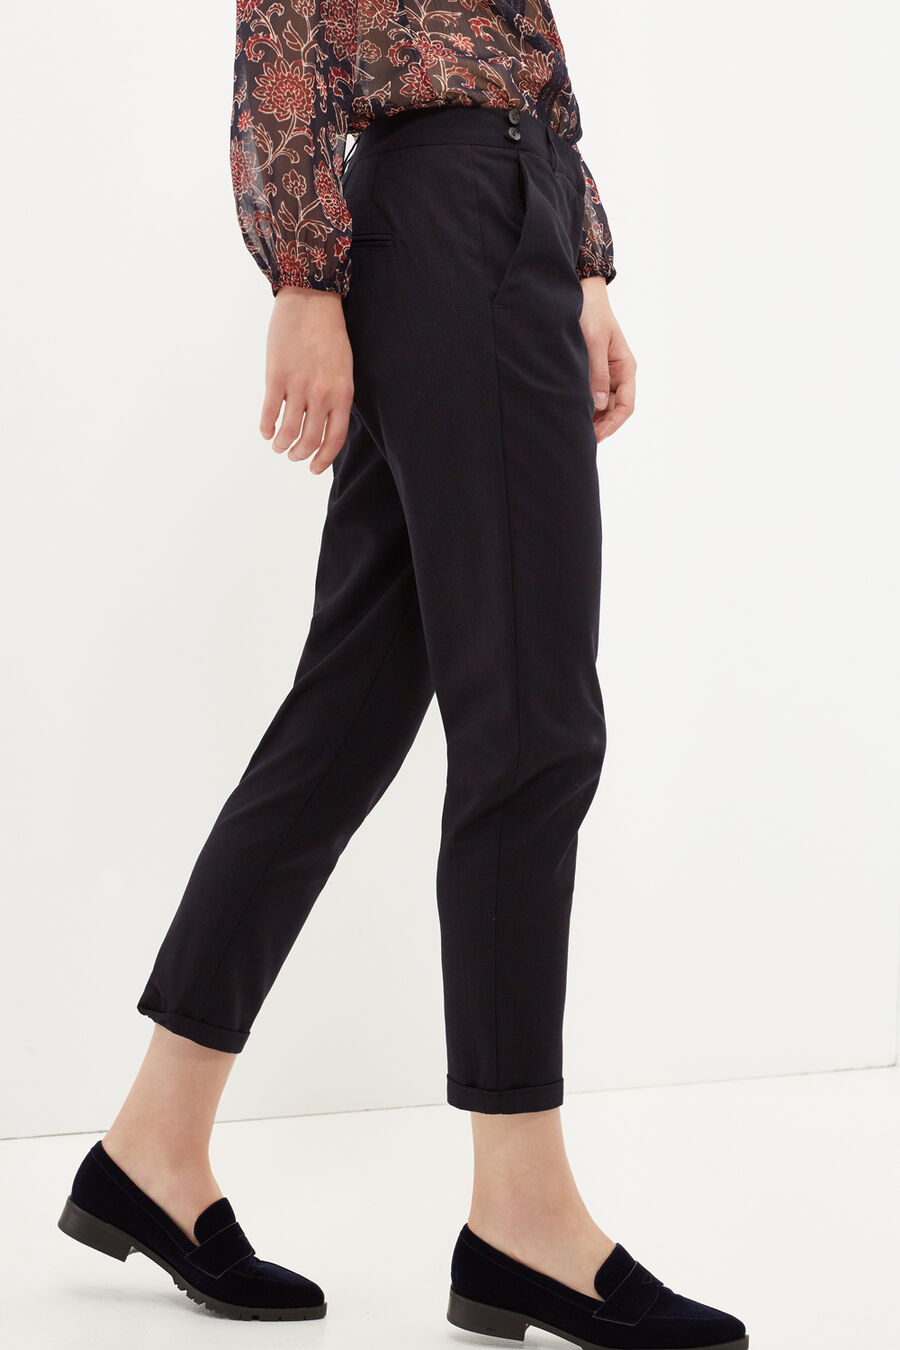 Prince of Wales print trousers